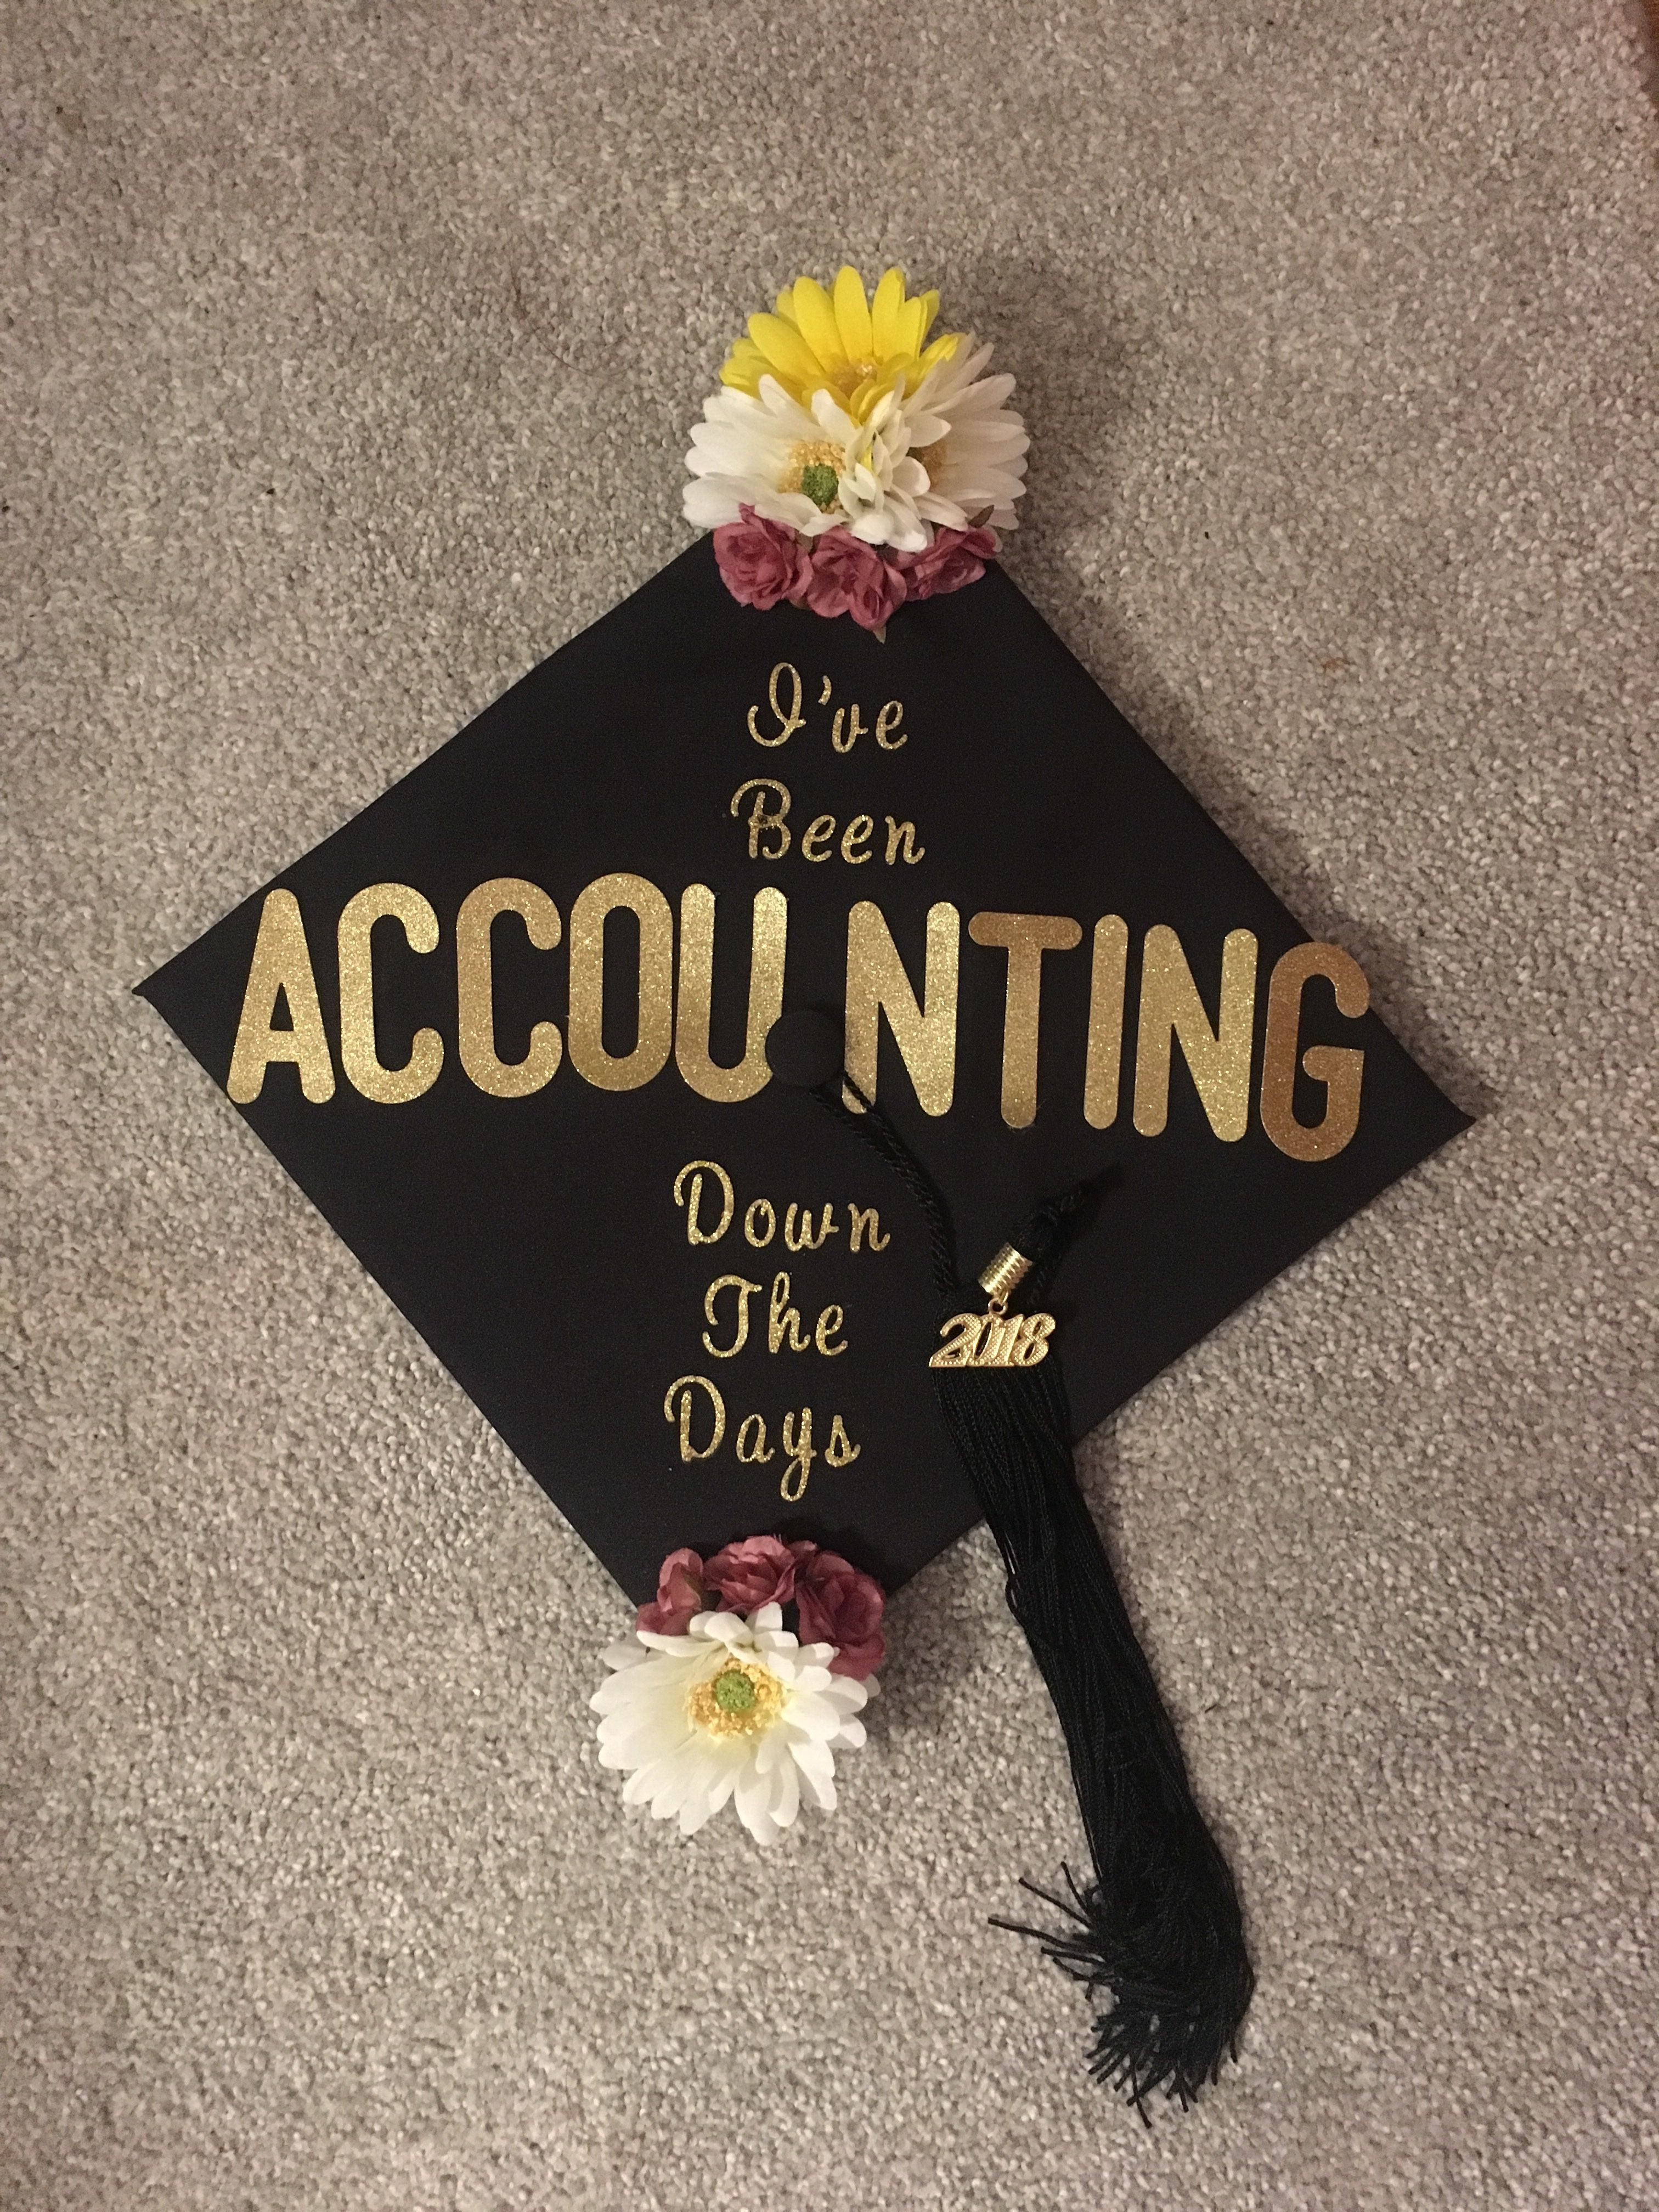 20 Accounting Graduation Cap Sayings Pictures And Ideas On Meta